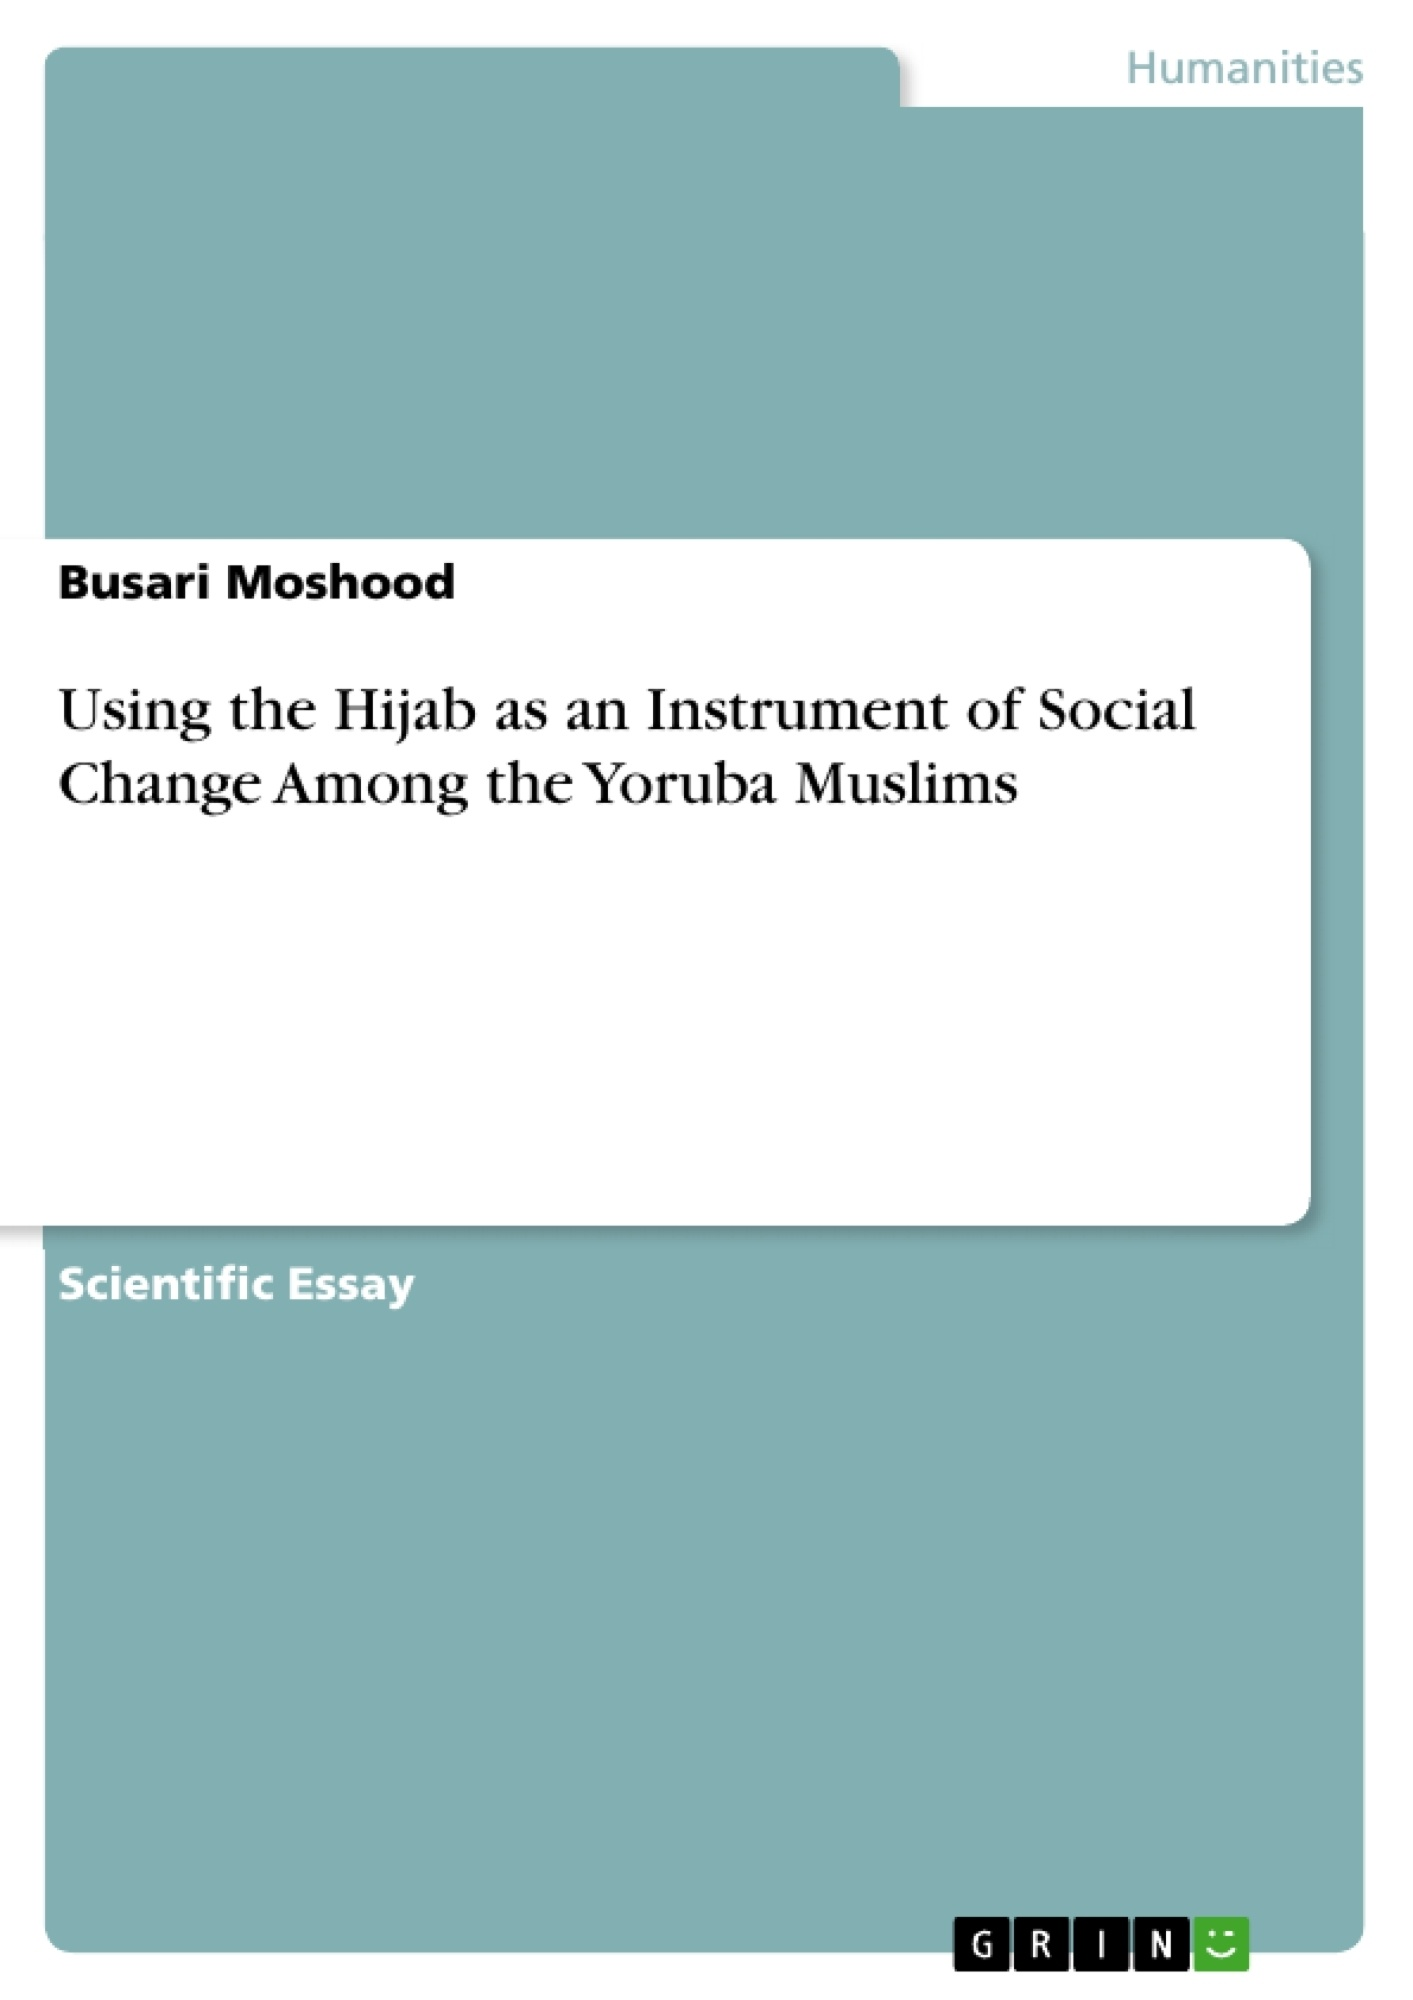 Title: Using the Hijab as an Instrument of Social Change Among the Yoruba Muslims